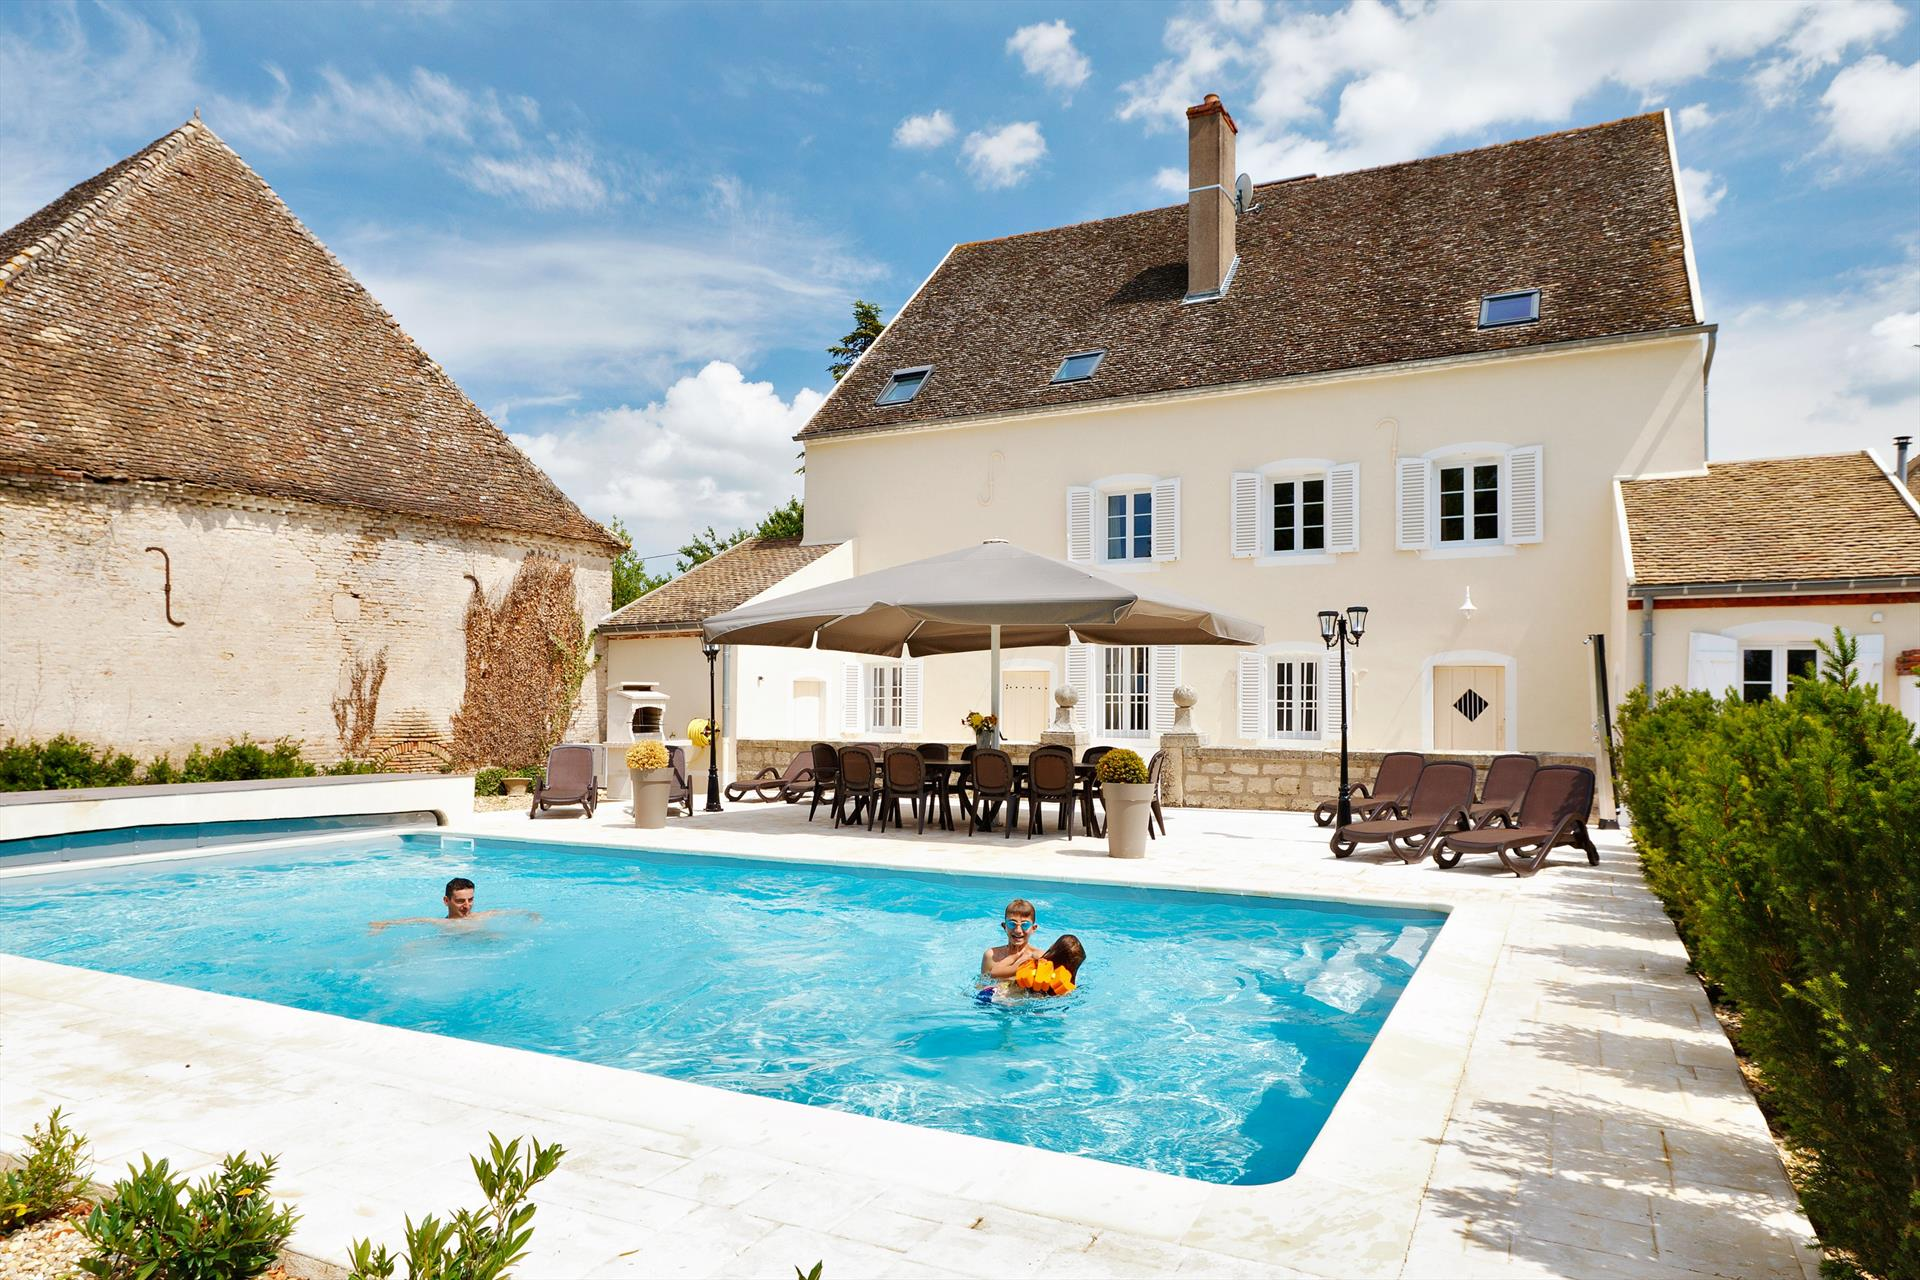 Doub, Country house  with heated pool in Saunieres, Burgundy, France for 12 persons...